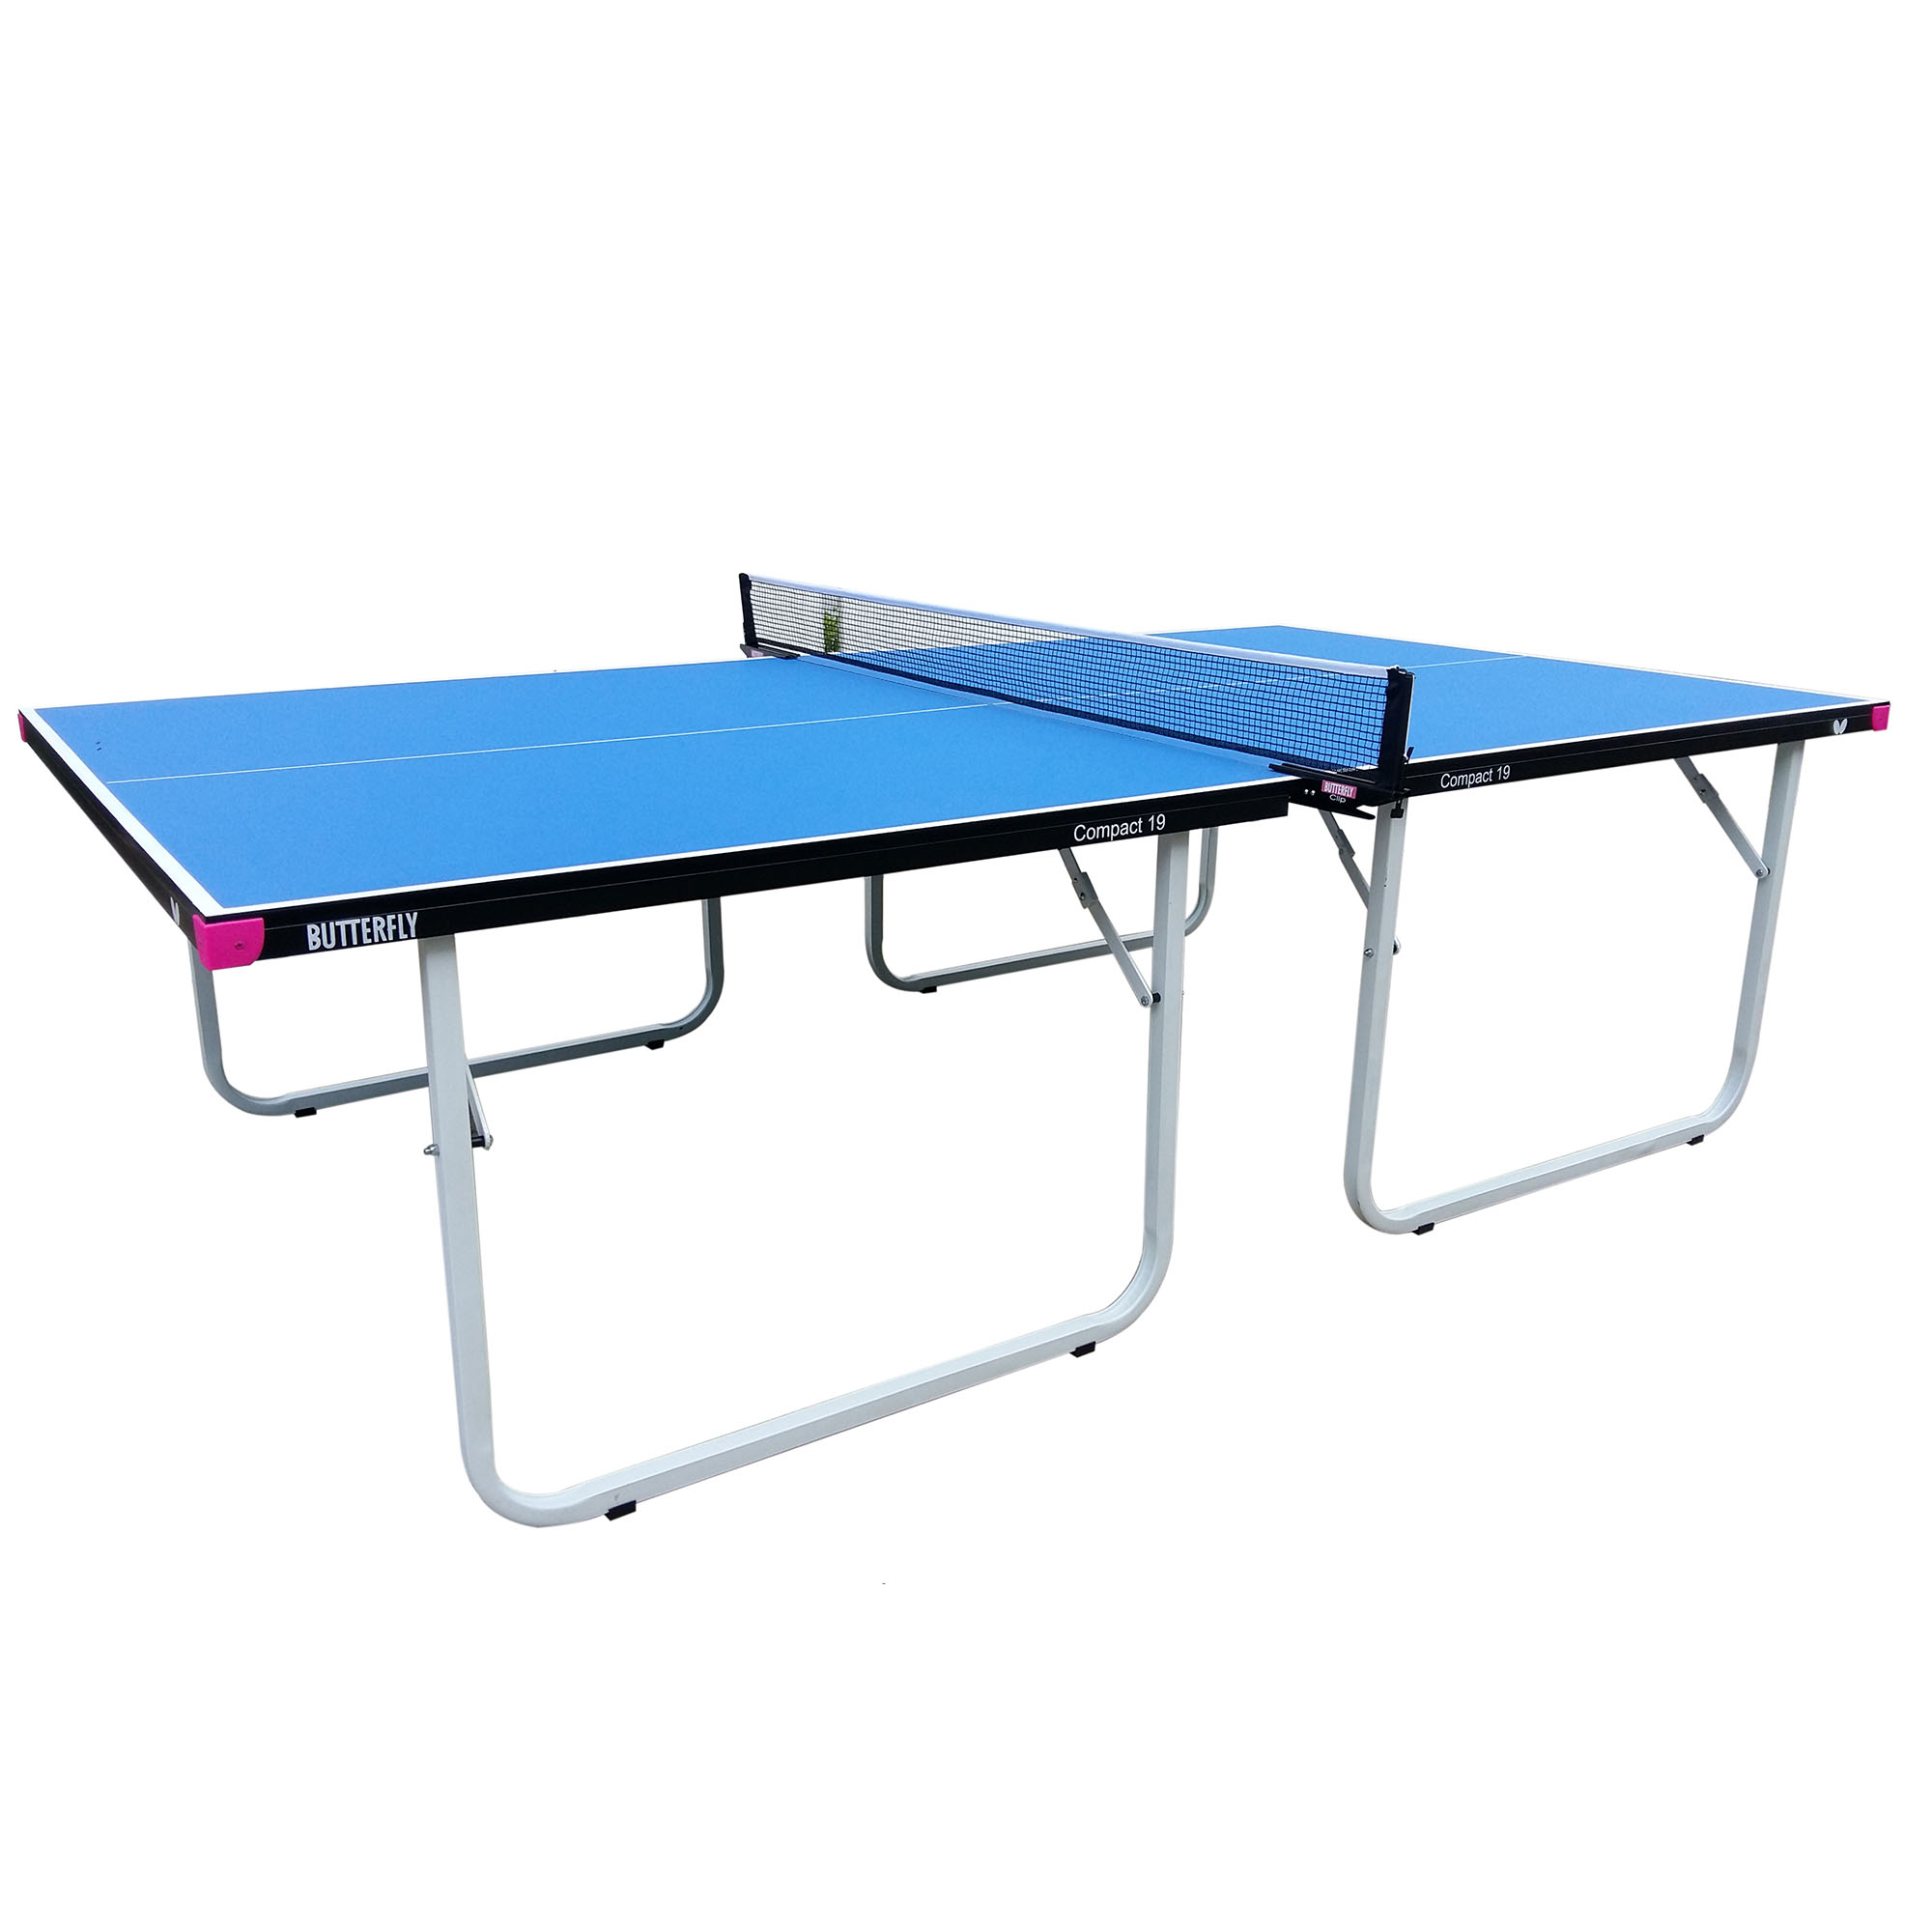 Butterfly Compact 19 Indoor Table Tennis Table  Blue